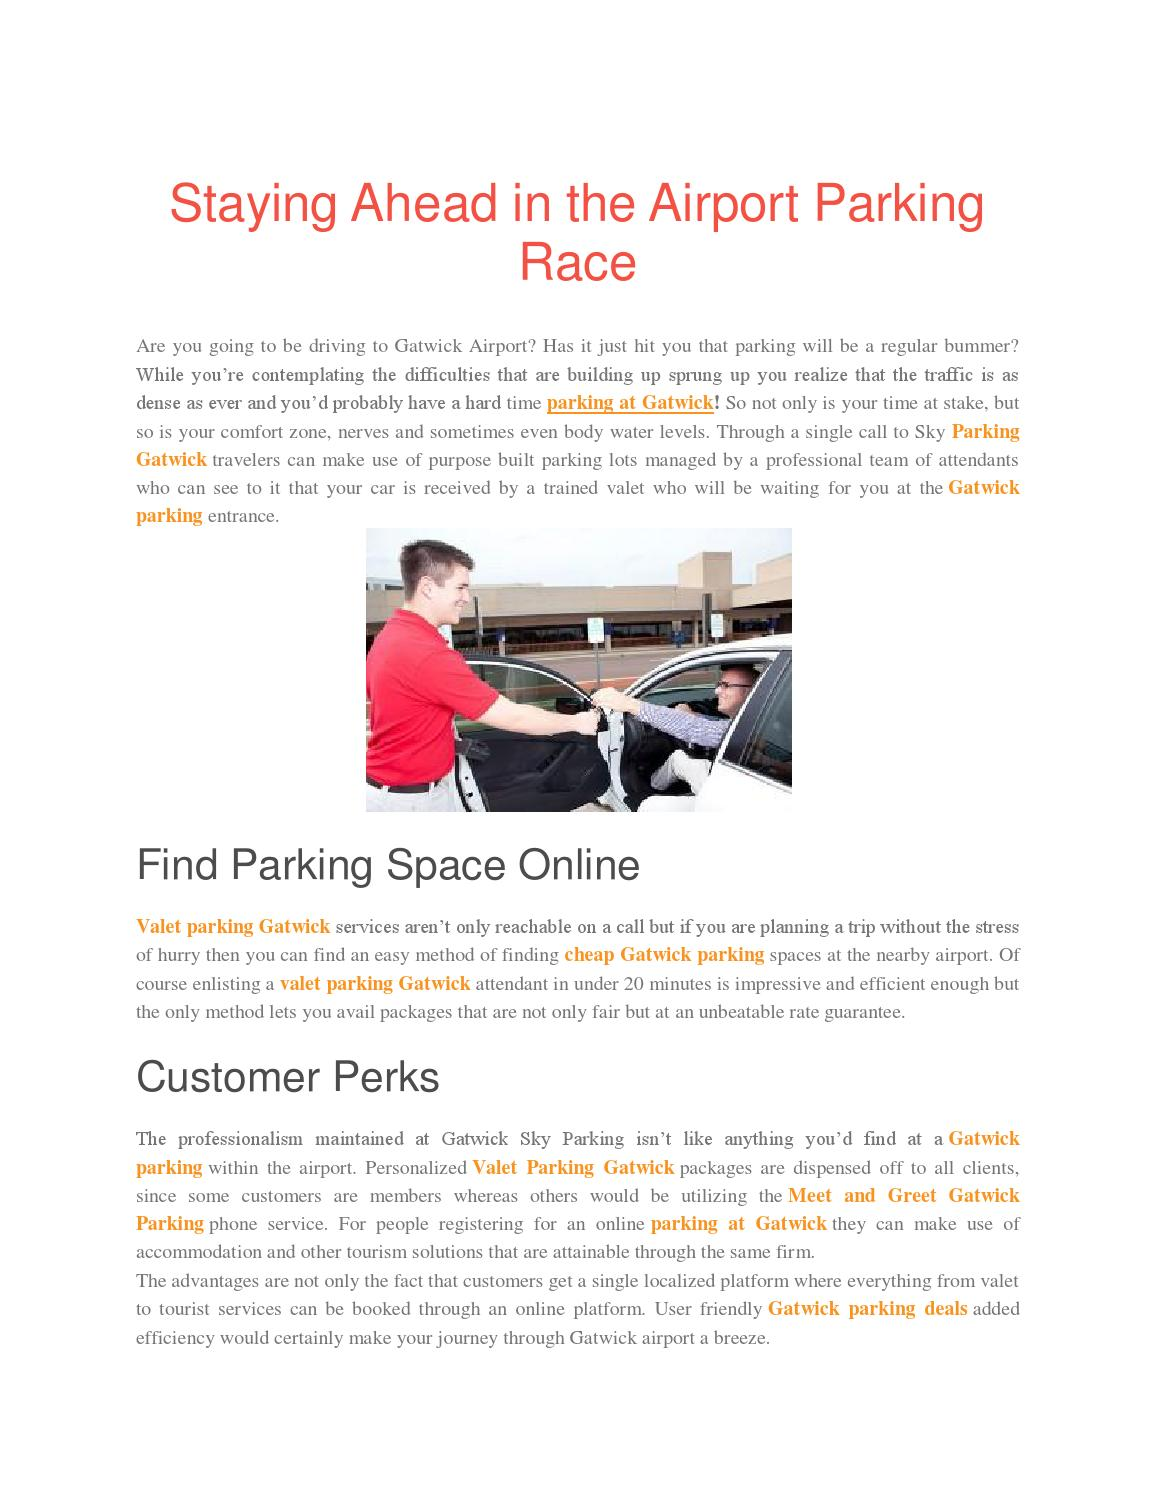 Staying Ahead In The Airport Parking Race By Lilyjames391 Issuu